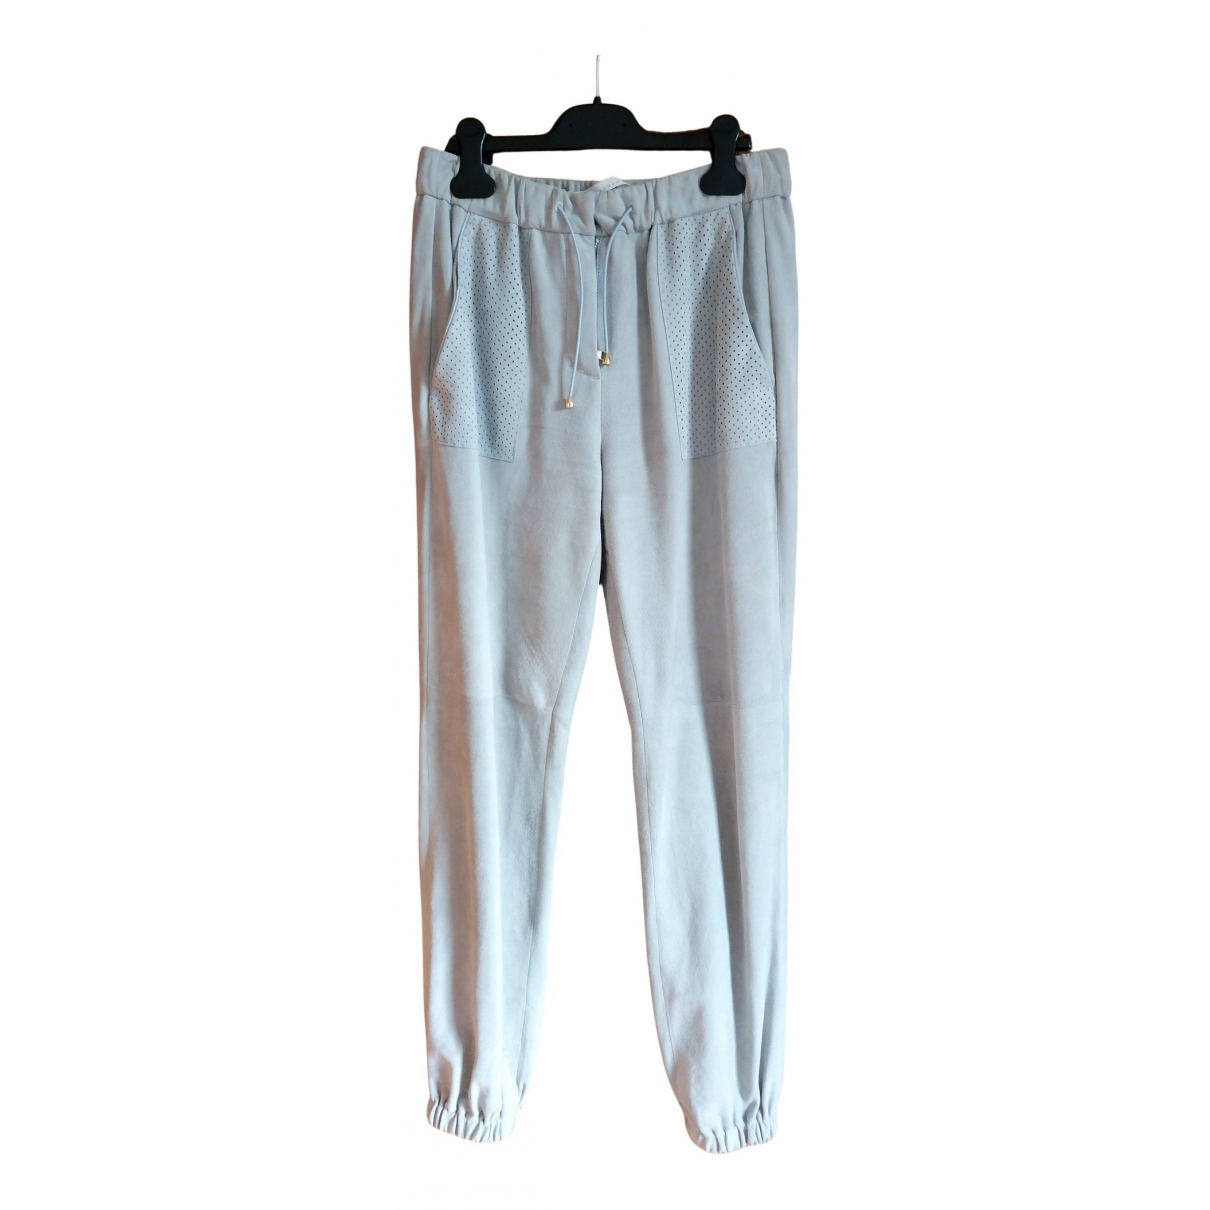 Schumacher N Grey Suede Trousers for Women 2 0-5